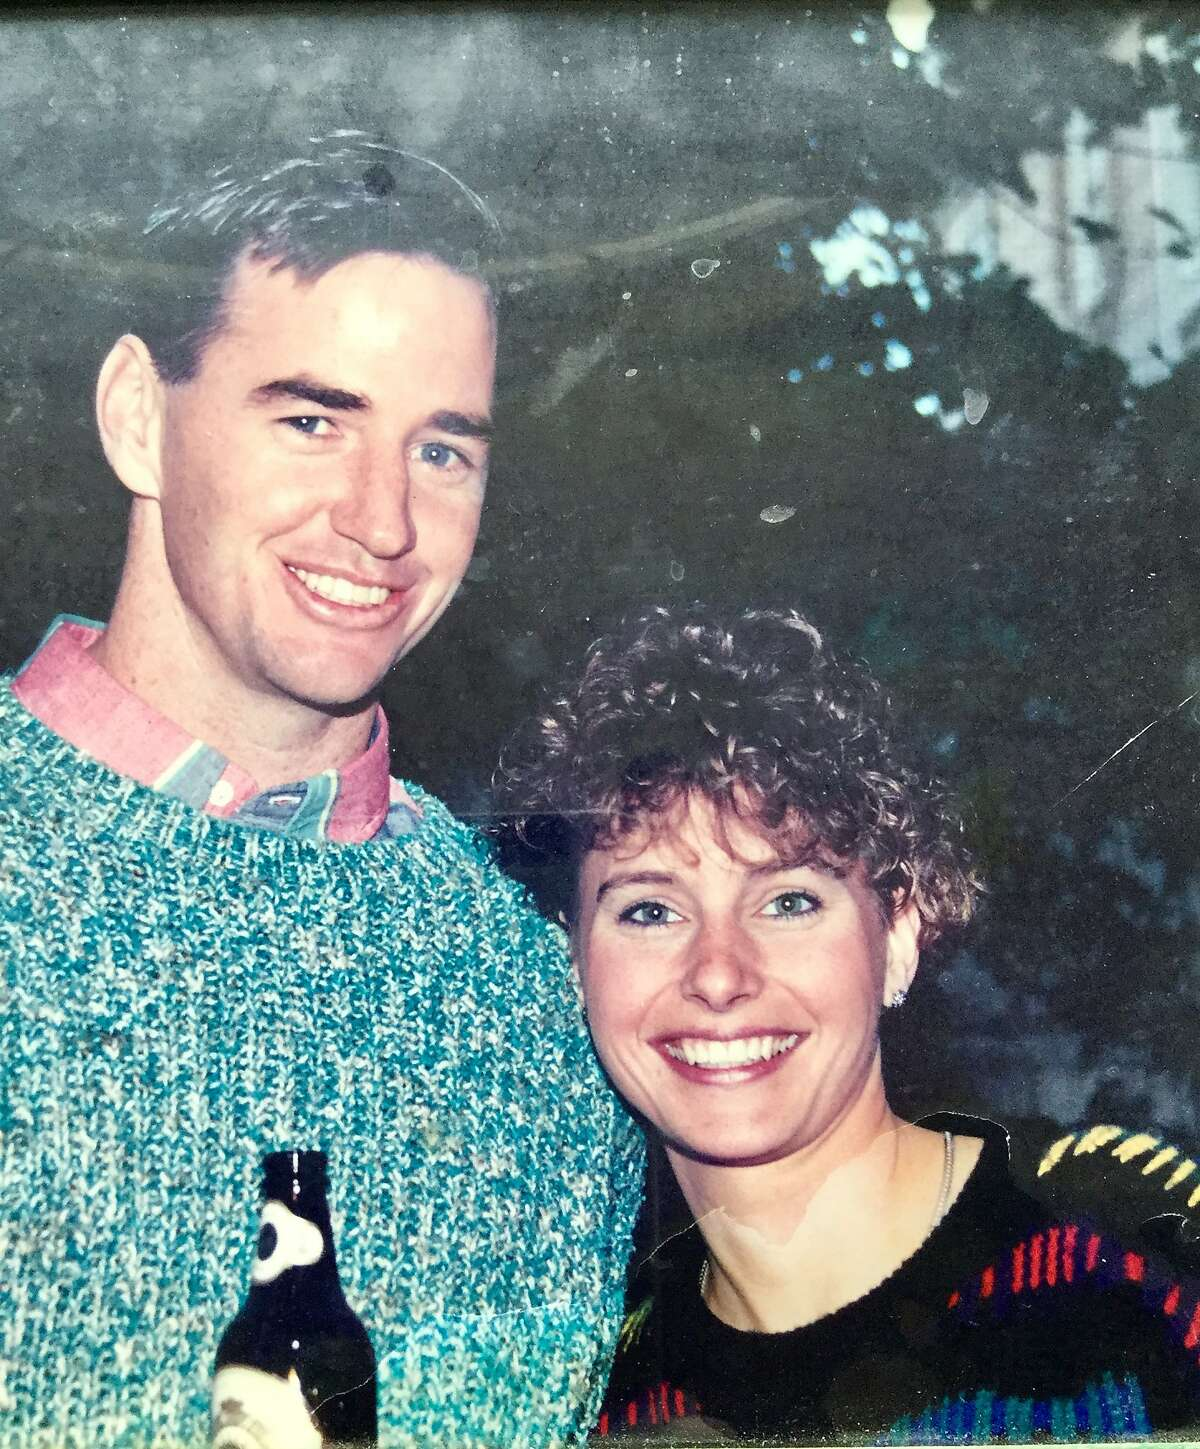 John Scully, shown with his wife, Michelle Scully, was slain in the 1993 attack at the San Francisco law office. He attempted to shield his wife from the killer.